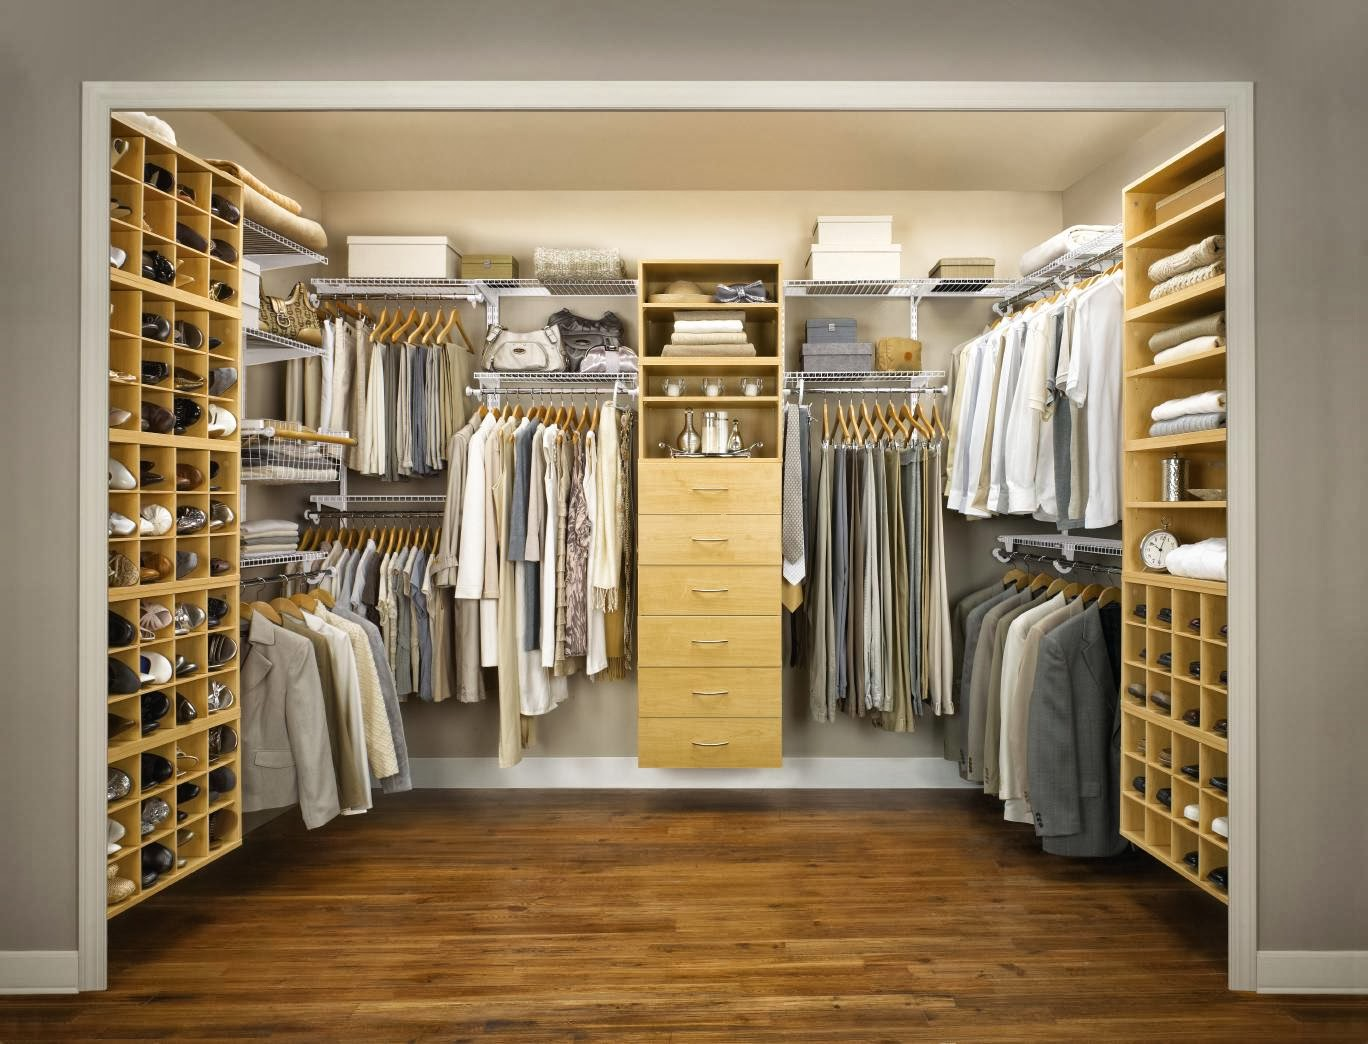 Bedroom closet organization ideas. Bedroom closet storage ideas   large and beautiful photos  Photo